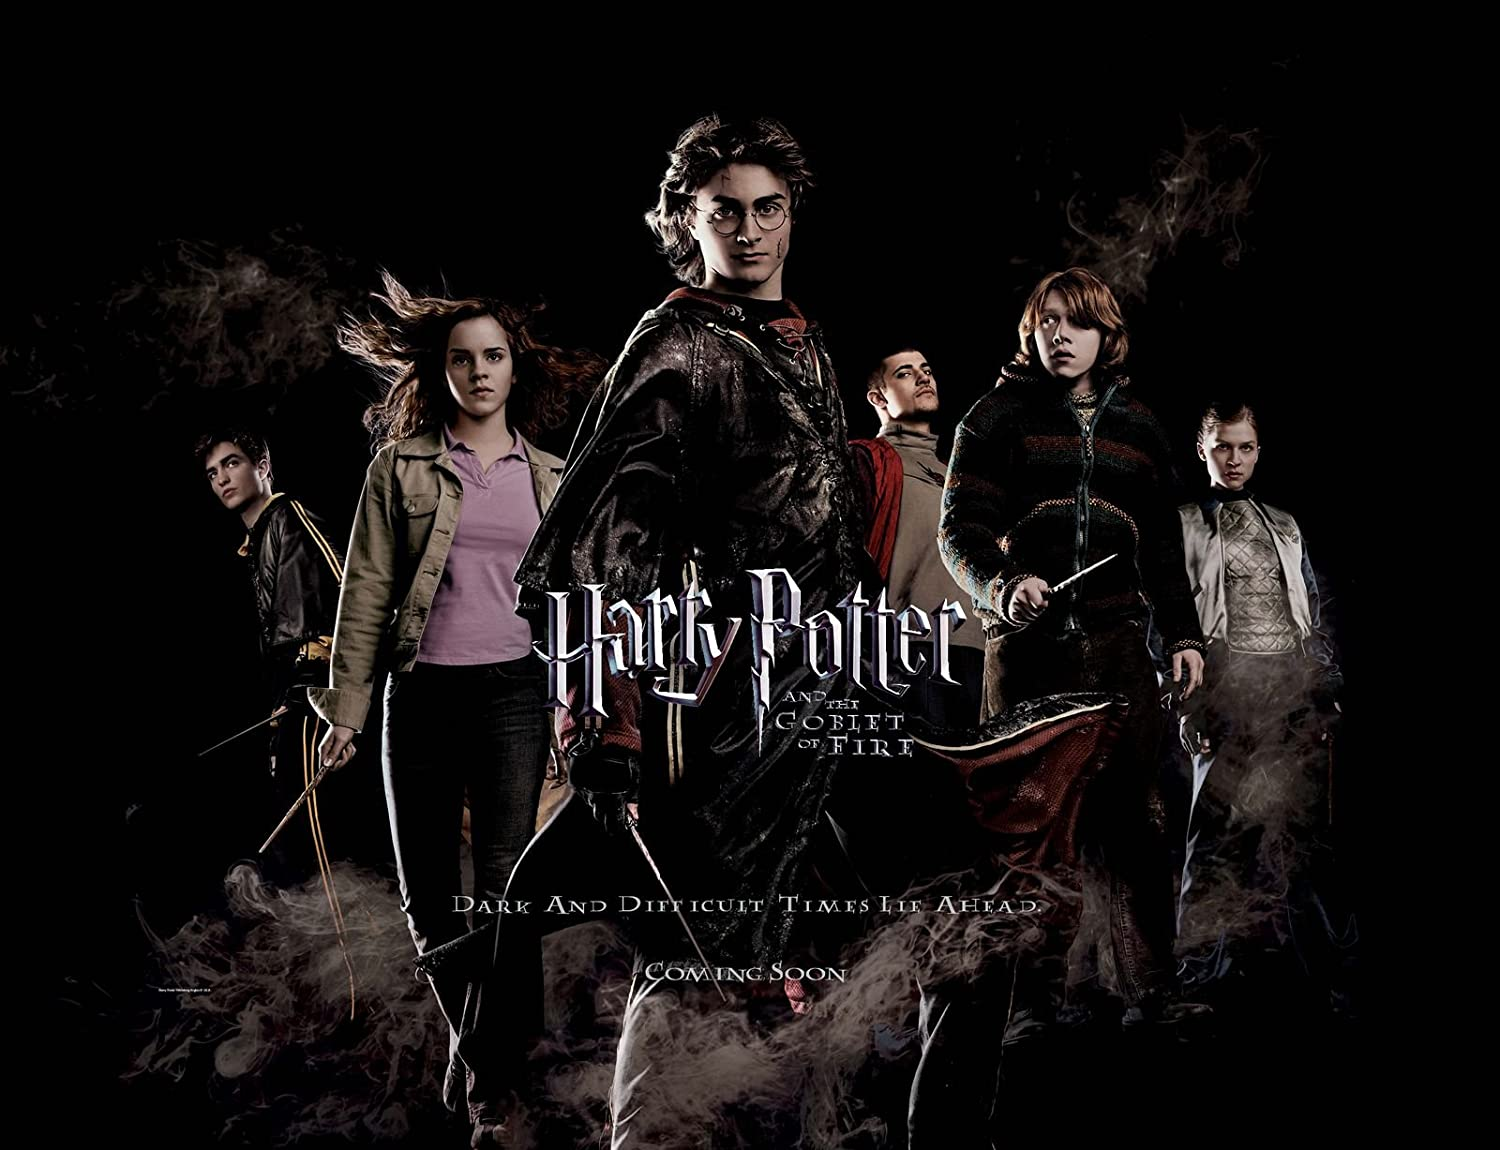 A4 A3 A2 A1 A0| Harry Potter And The Goblet Of Fire Movie Poster Print T464